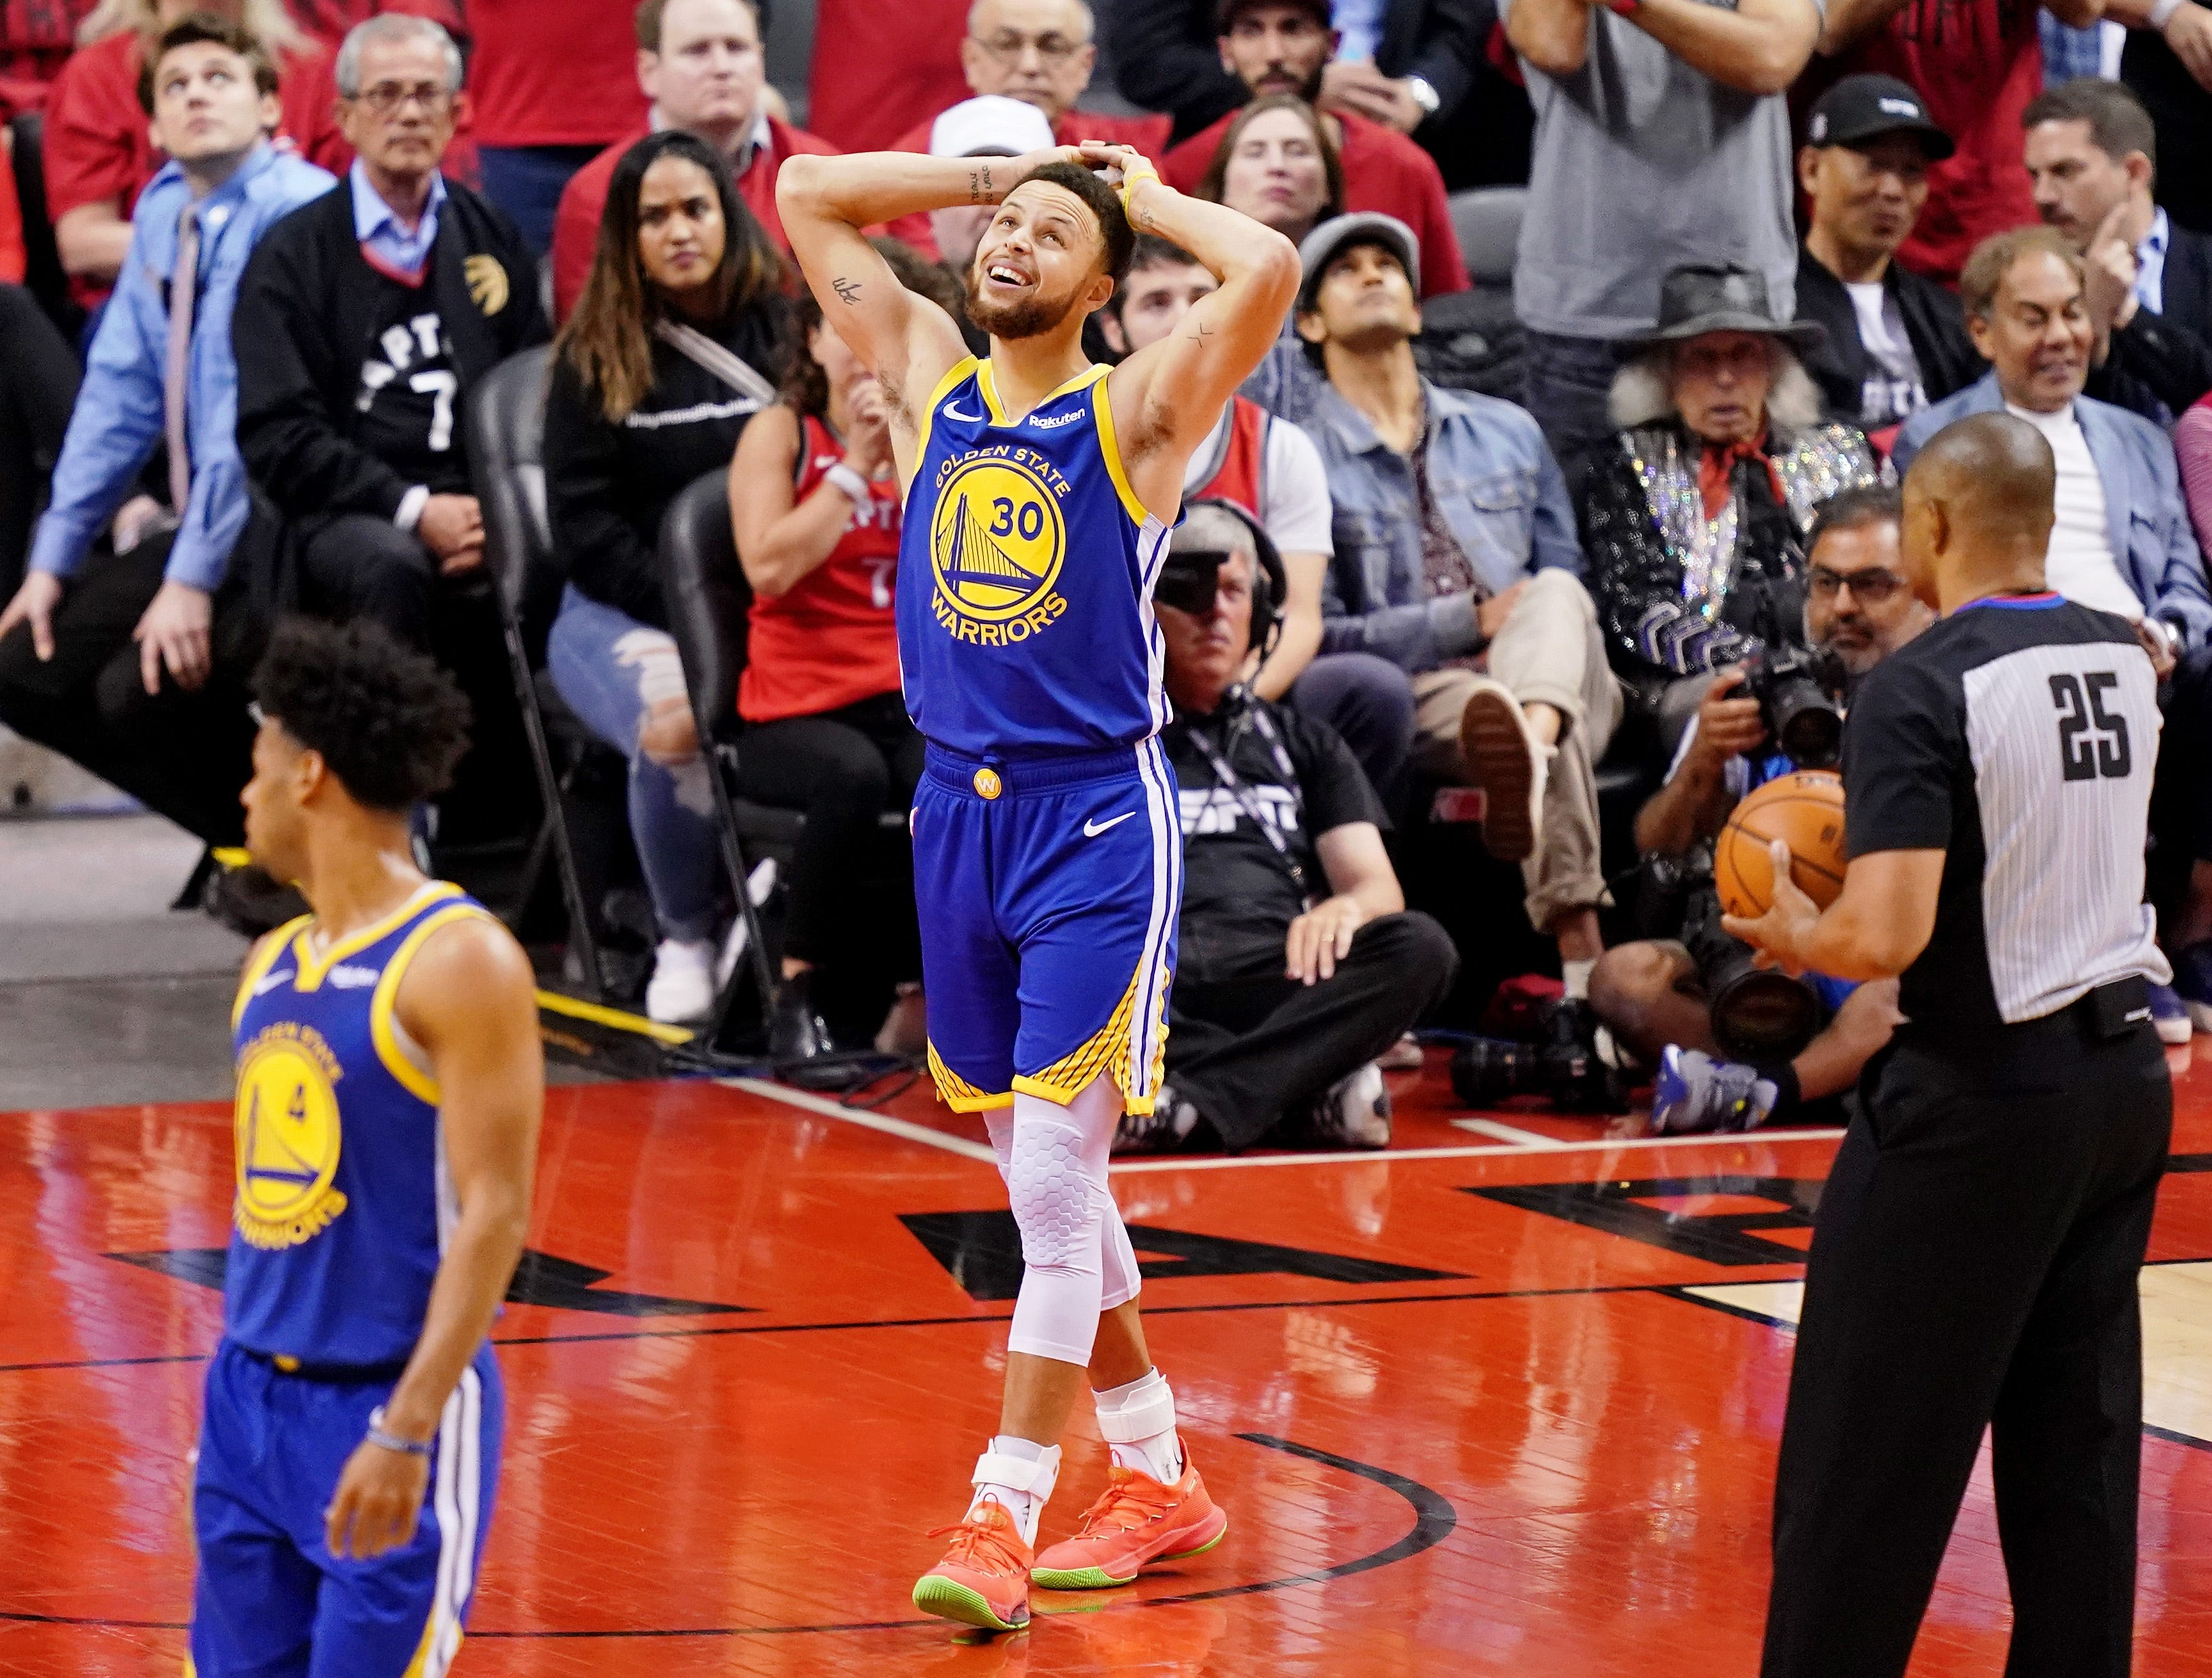 Nba Finals 2019 What Did Steph Curry Mean By Janky Defense